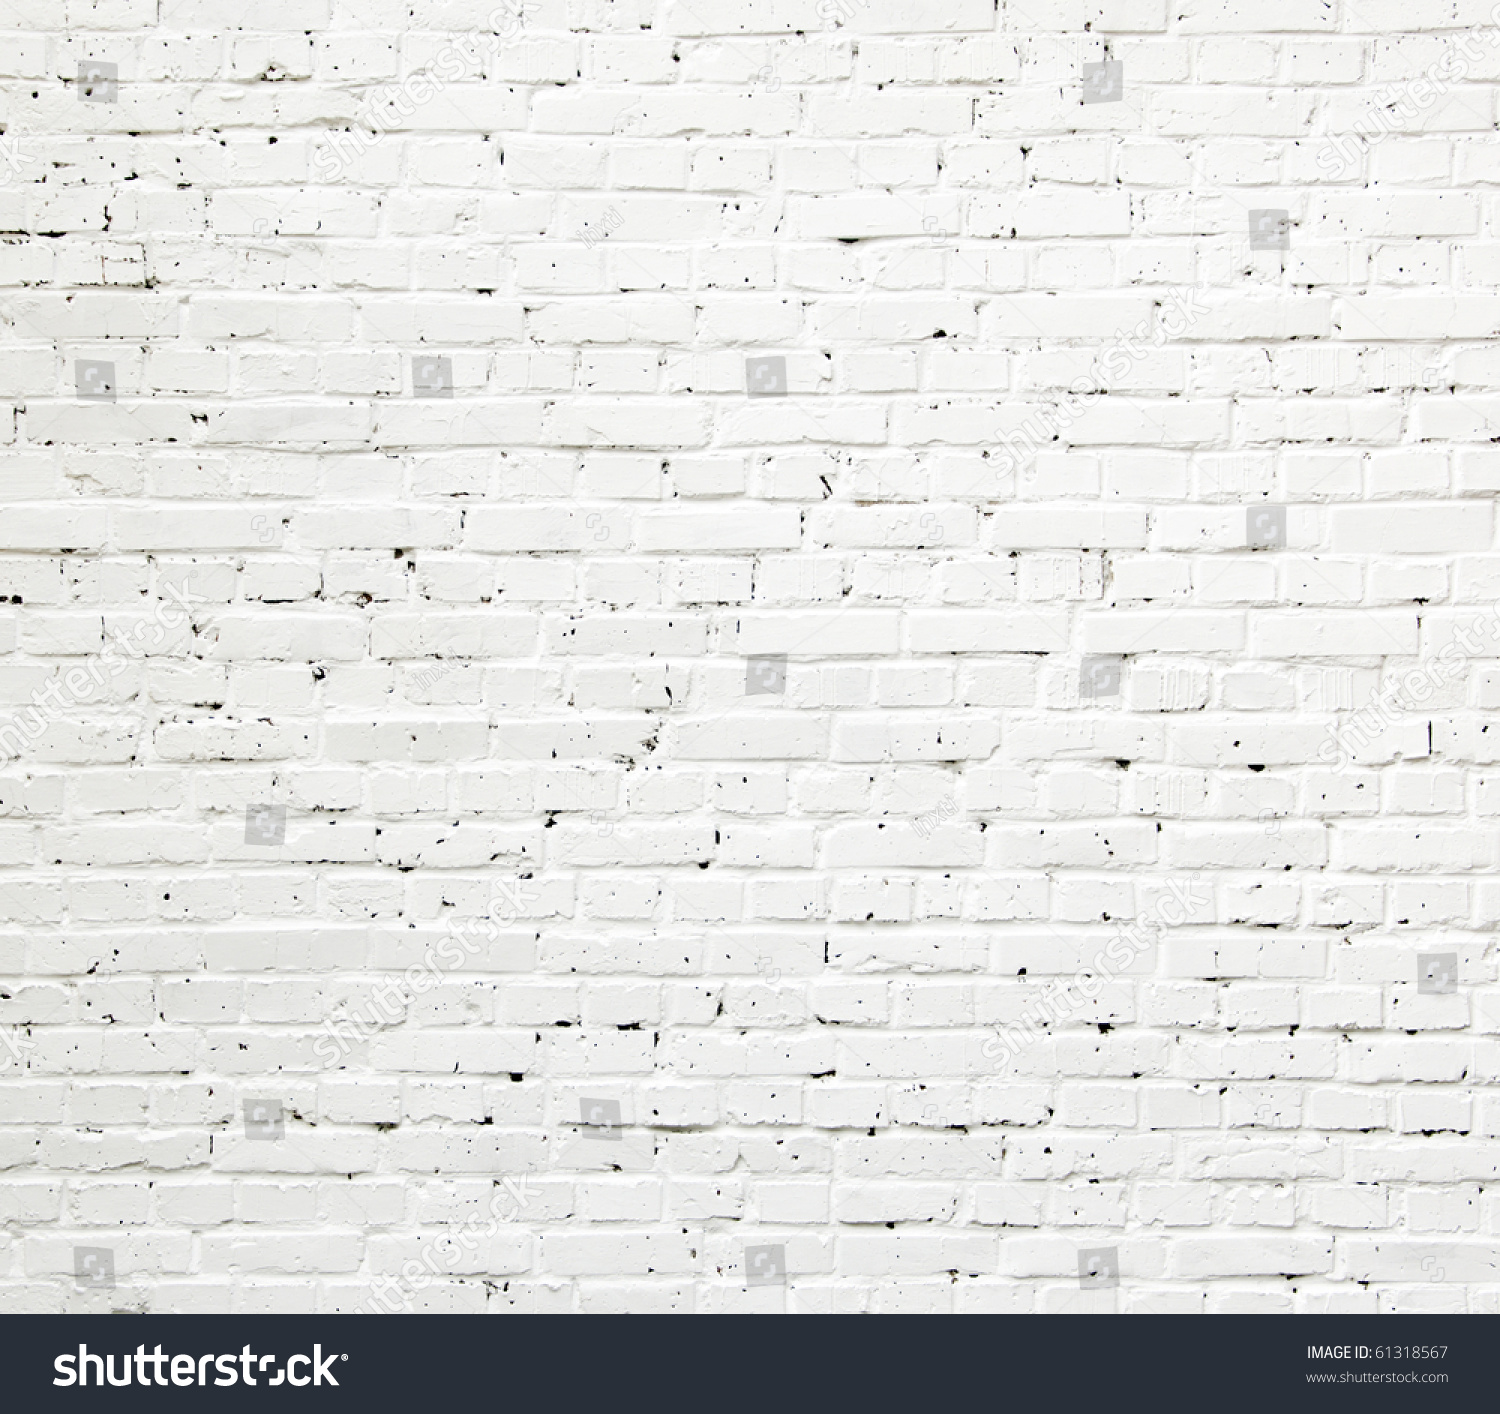 A White Roughly Textured Brick Wall Painted With White